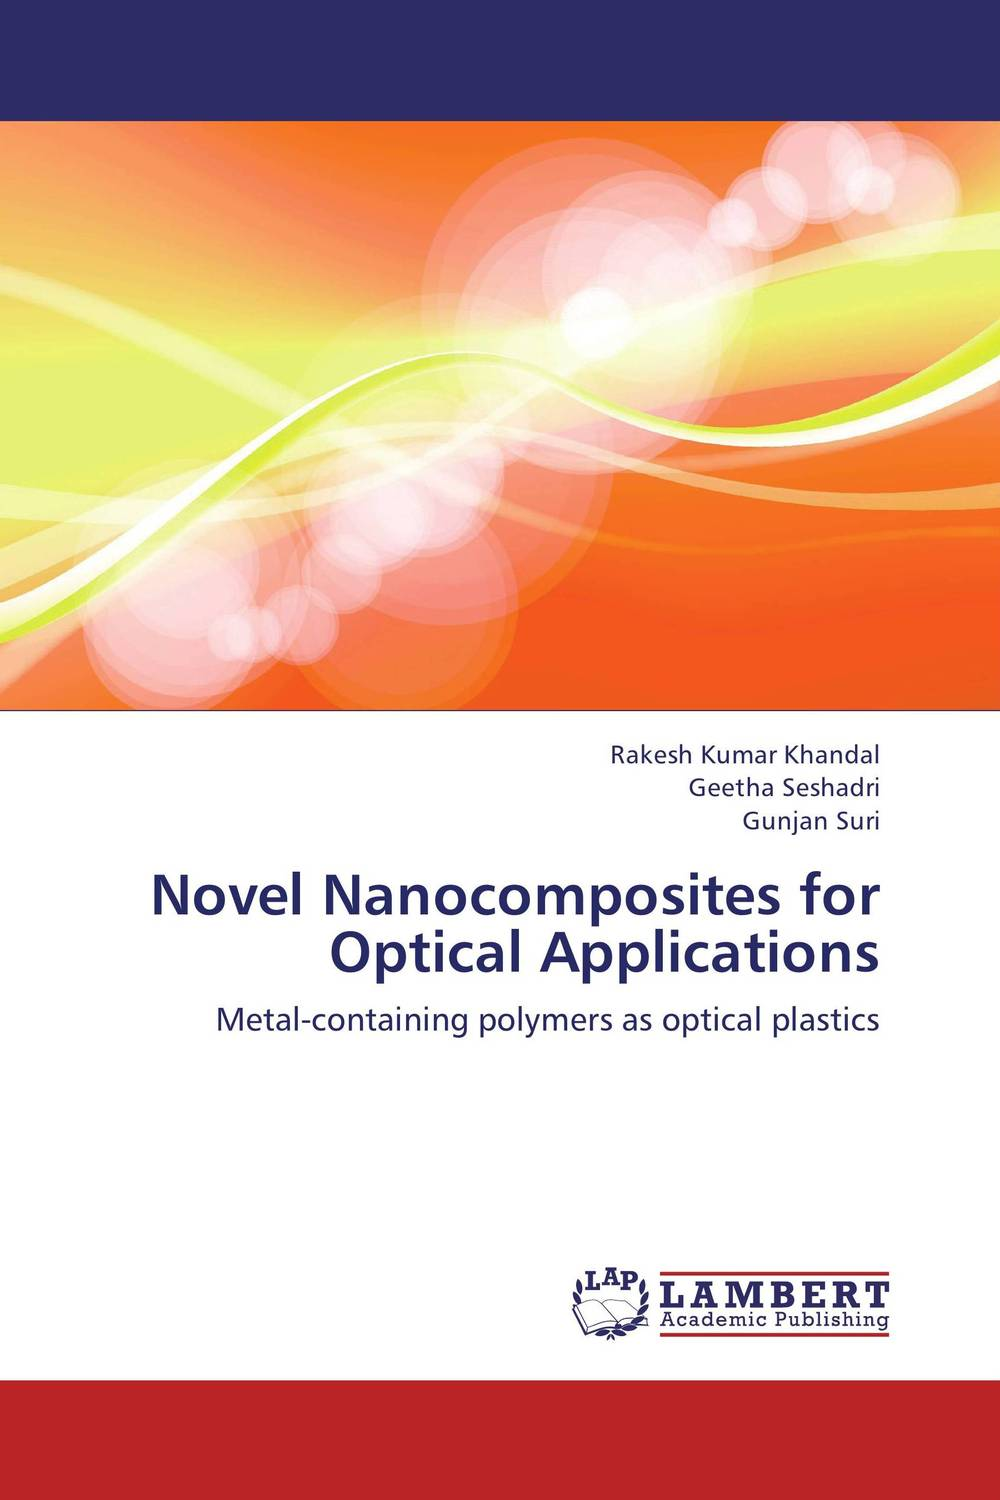 Novel Nanocomposites for Optical Applications the lonely polygamist – a novel